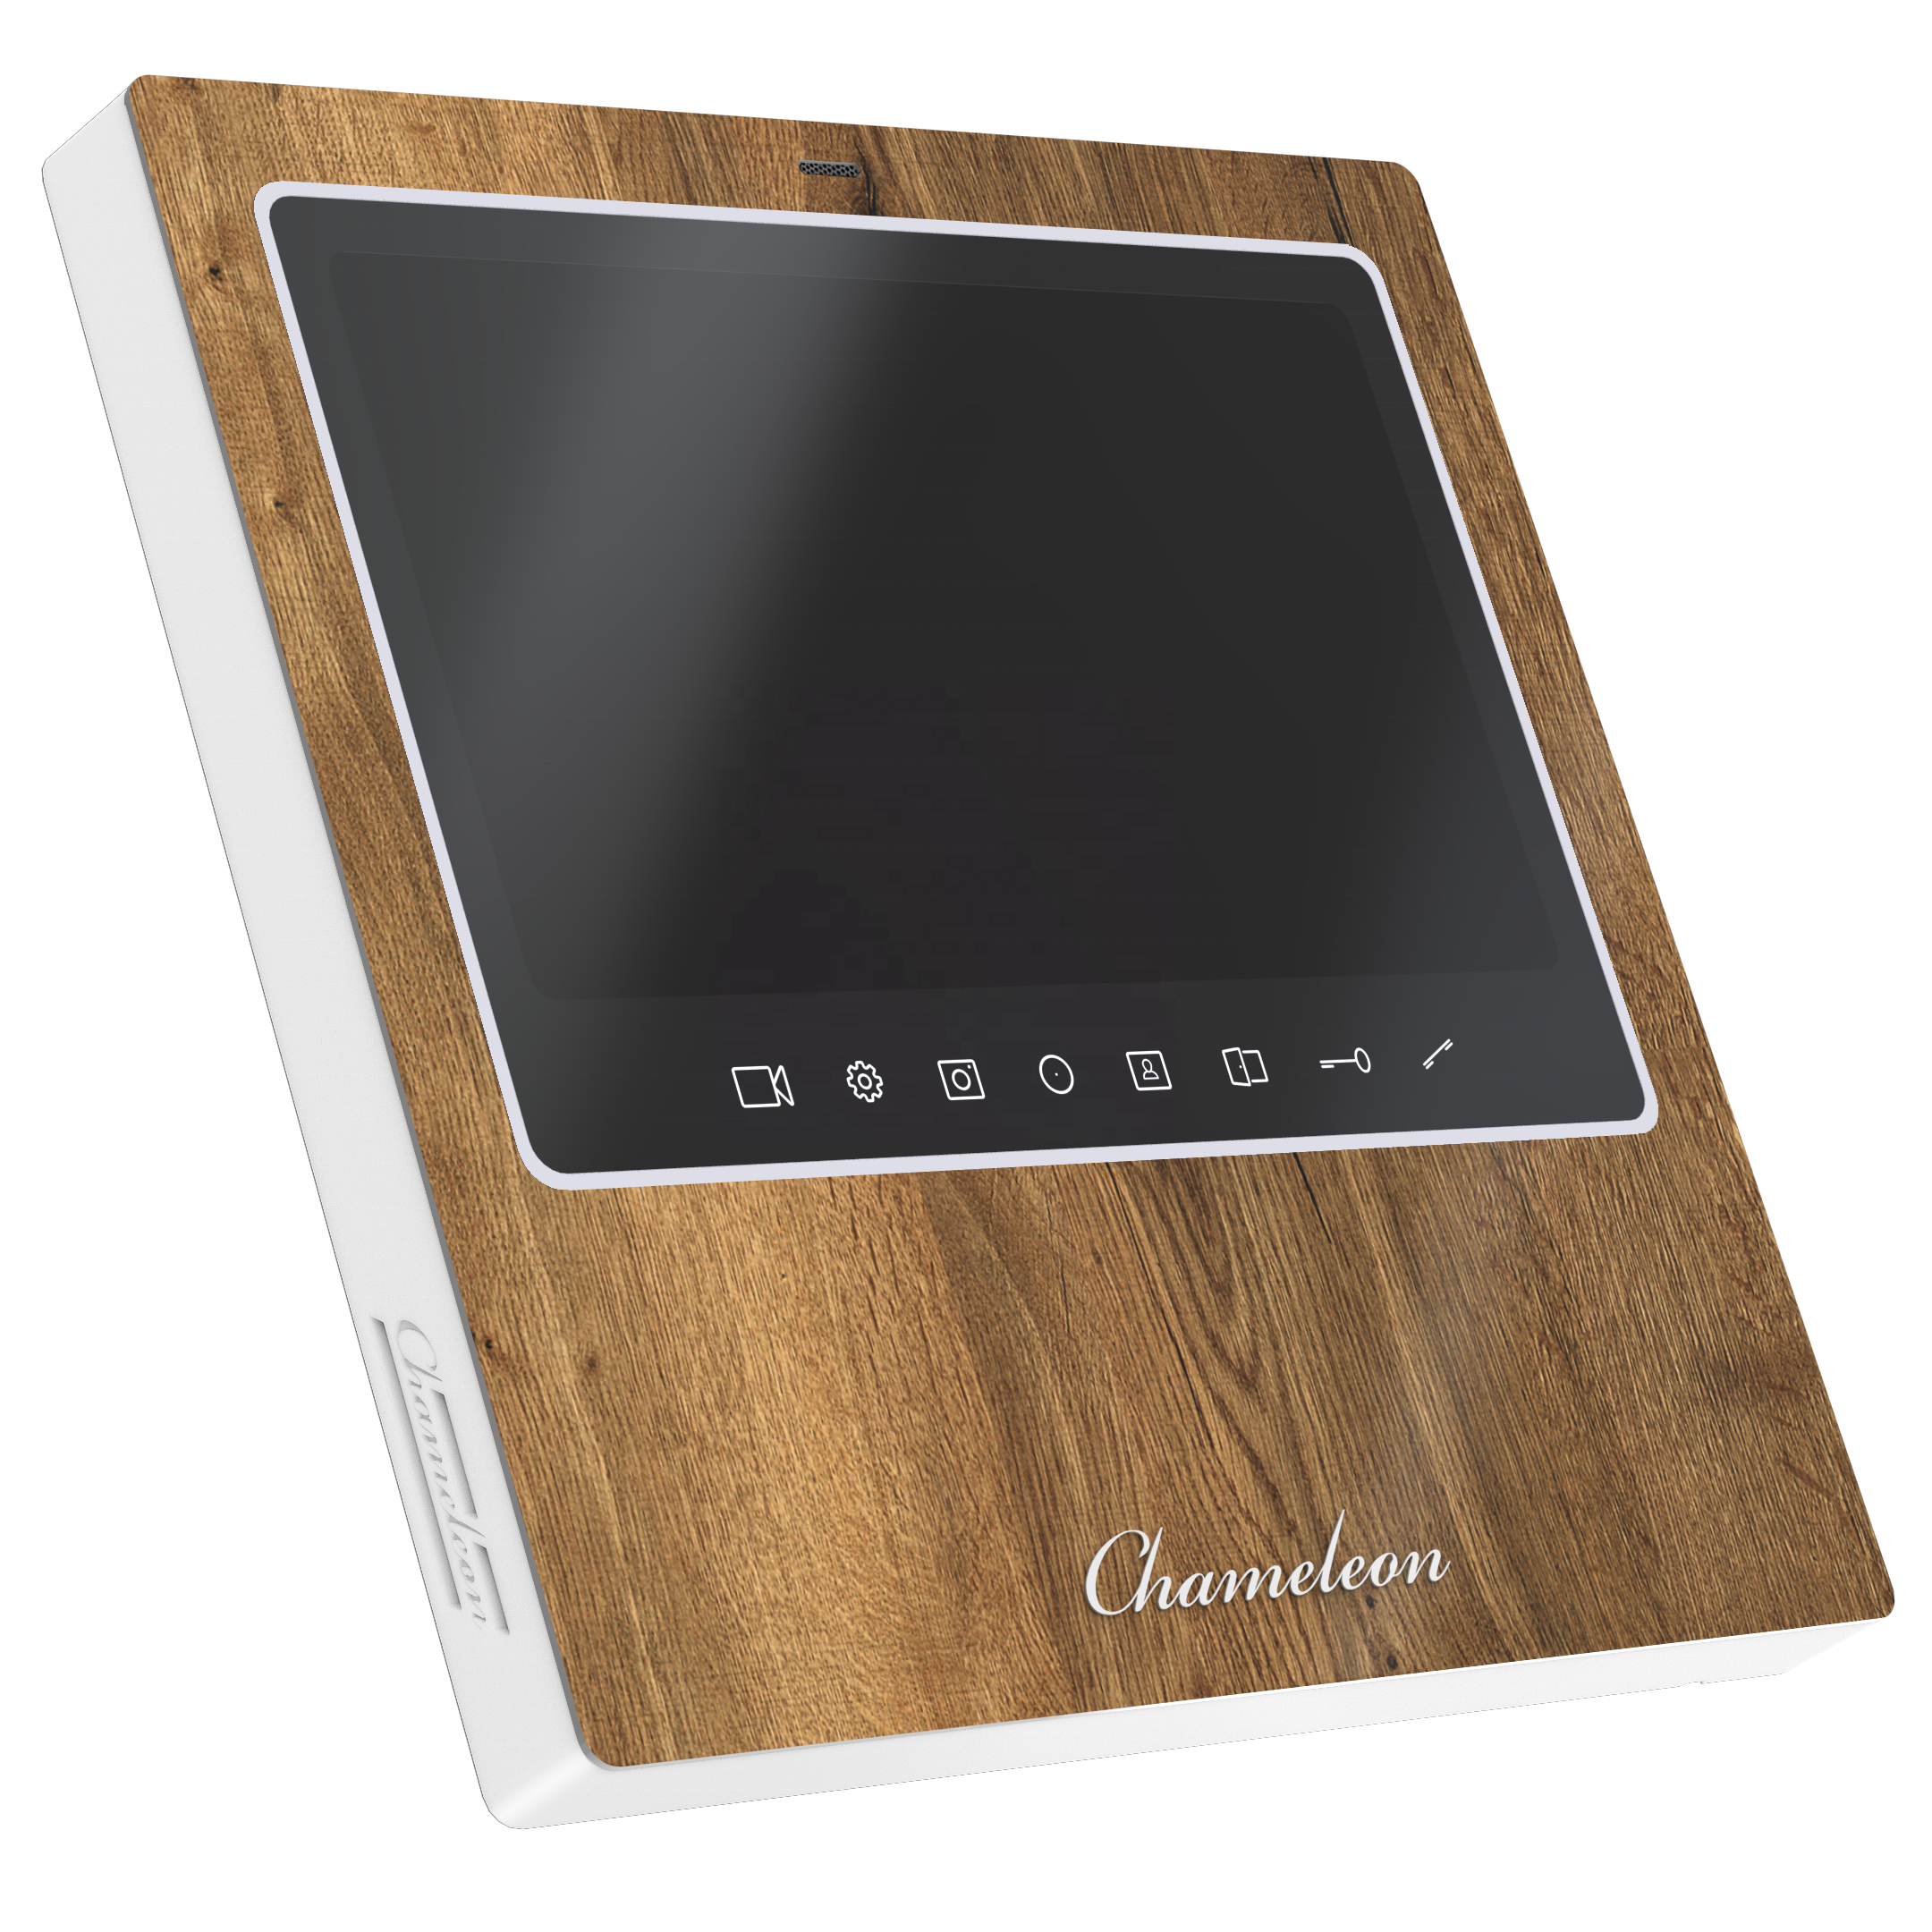 Video intercom #15 Chameleon Model S. The front panel of the video door bell is decorated with natural oak veneer.